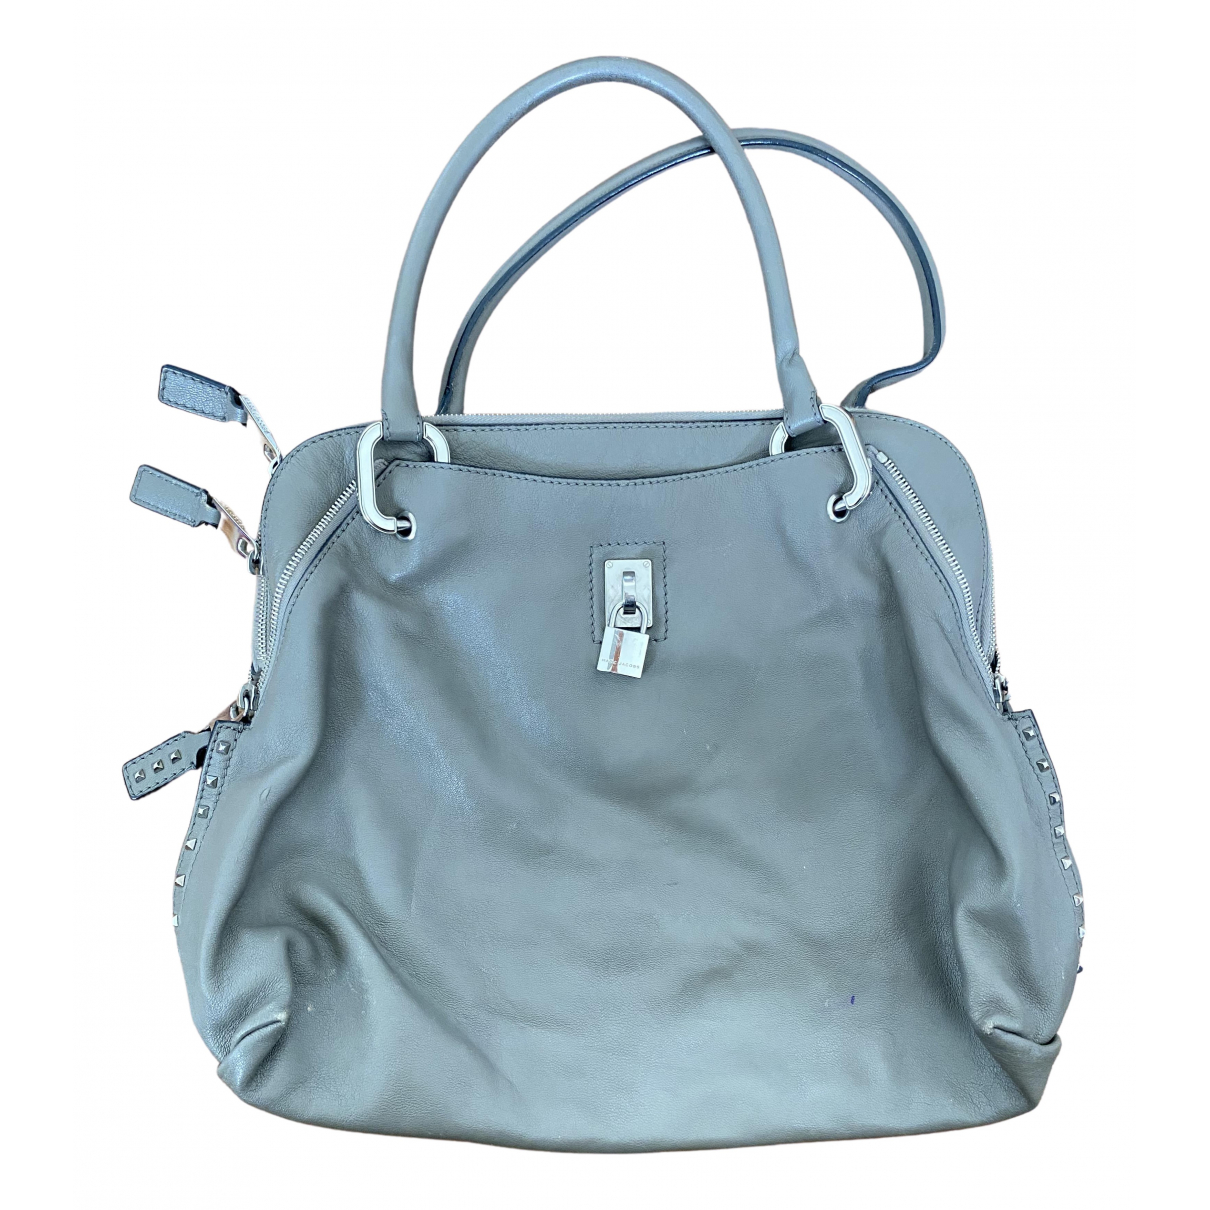 Marc Jacobs \N Grey Leather handbag for Women \N